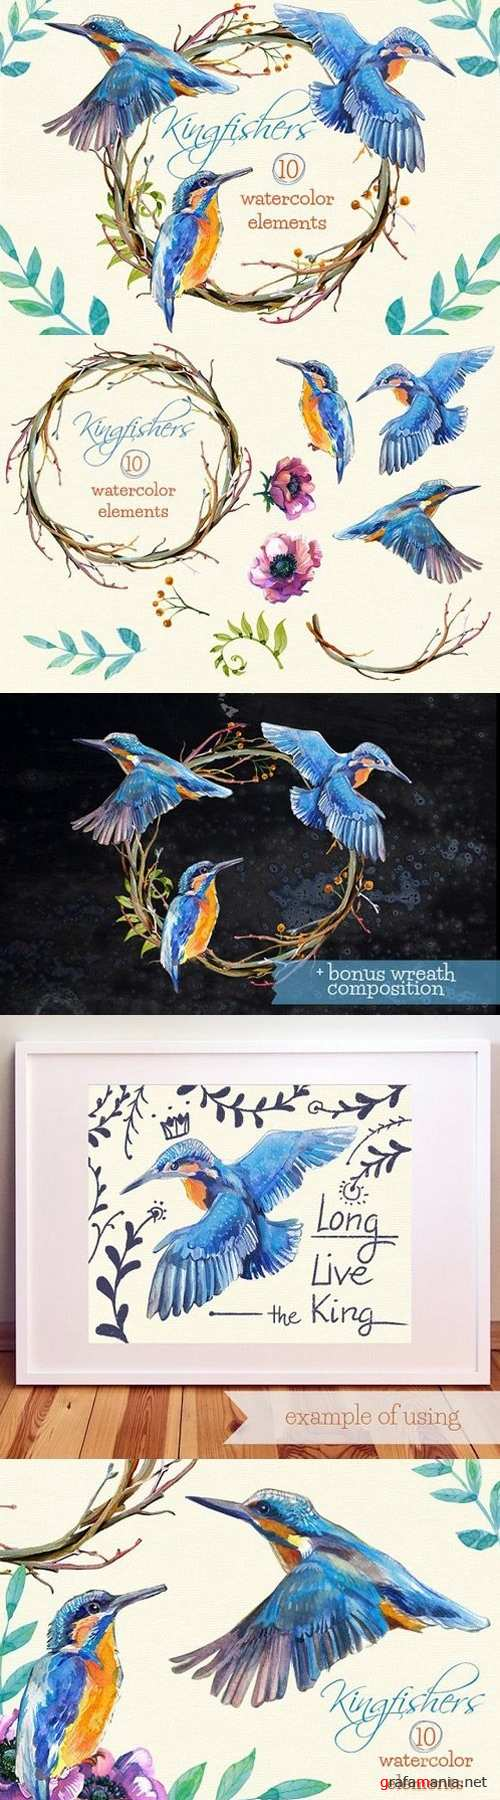 Kingfishers Watercolor Clip Arts -10 1635309